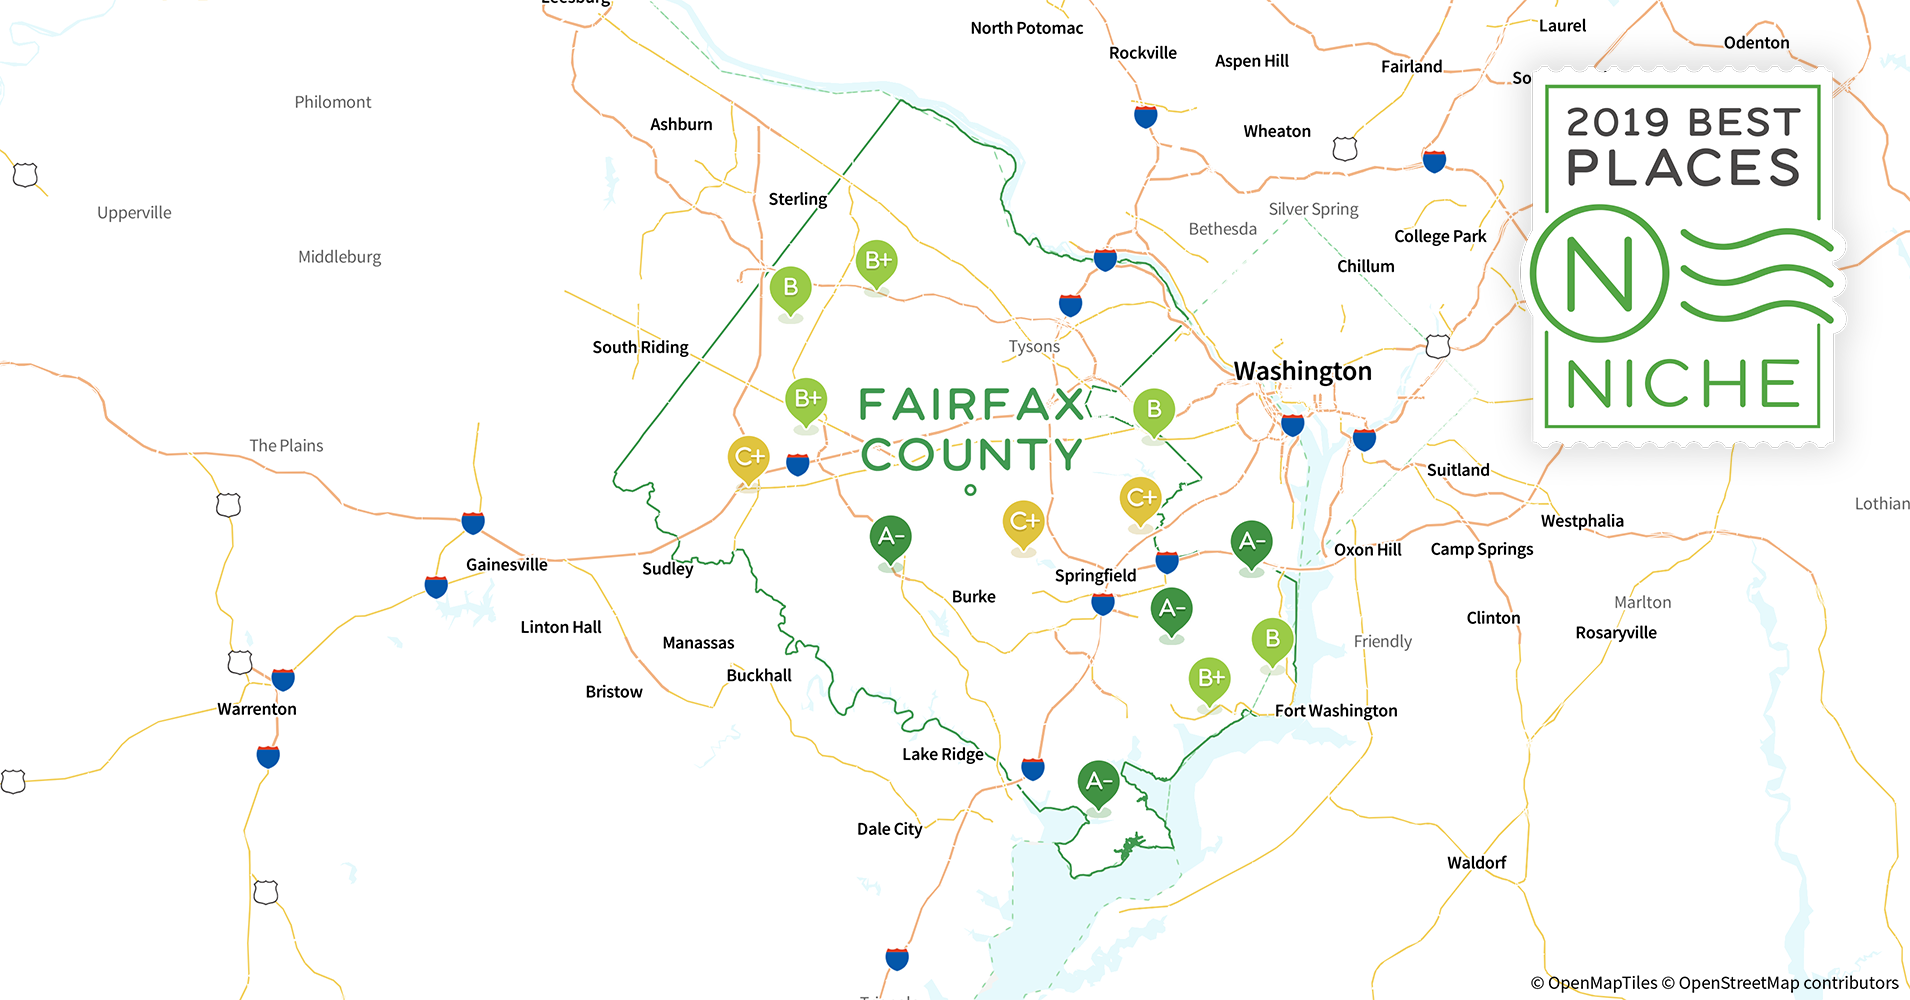 2019 Best ZIP Codes to Buy a House in Fairfax County, VA - Niche Zip Code Map Fairfax County on fairfax county region map, dc zip map, fairfax sc sc map, prince william co map, fairfax county district map, fairfax county water map, maryland zip codes by state map, fairfax county boundary map, fairfax city zip code, hampton city virginia map, fairfax county road map, prince george s county map, fairfax county weather, fairfax alaska map, fairfax county neighborhood map, fairfax county street map, fairfax county precinct map, alexandria va on us map, fairfax city map, fairfax county zoning map,